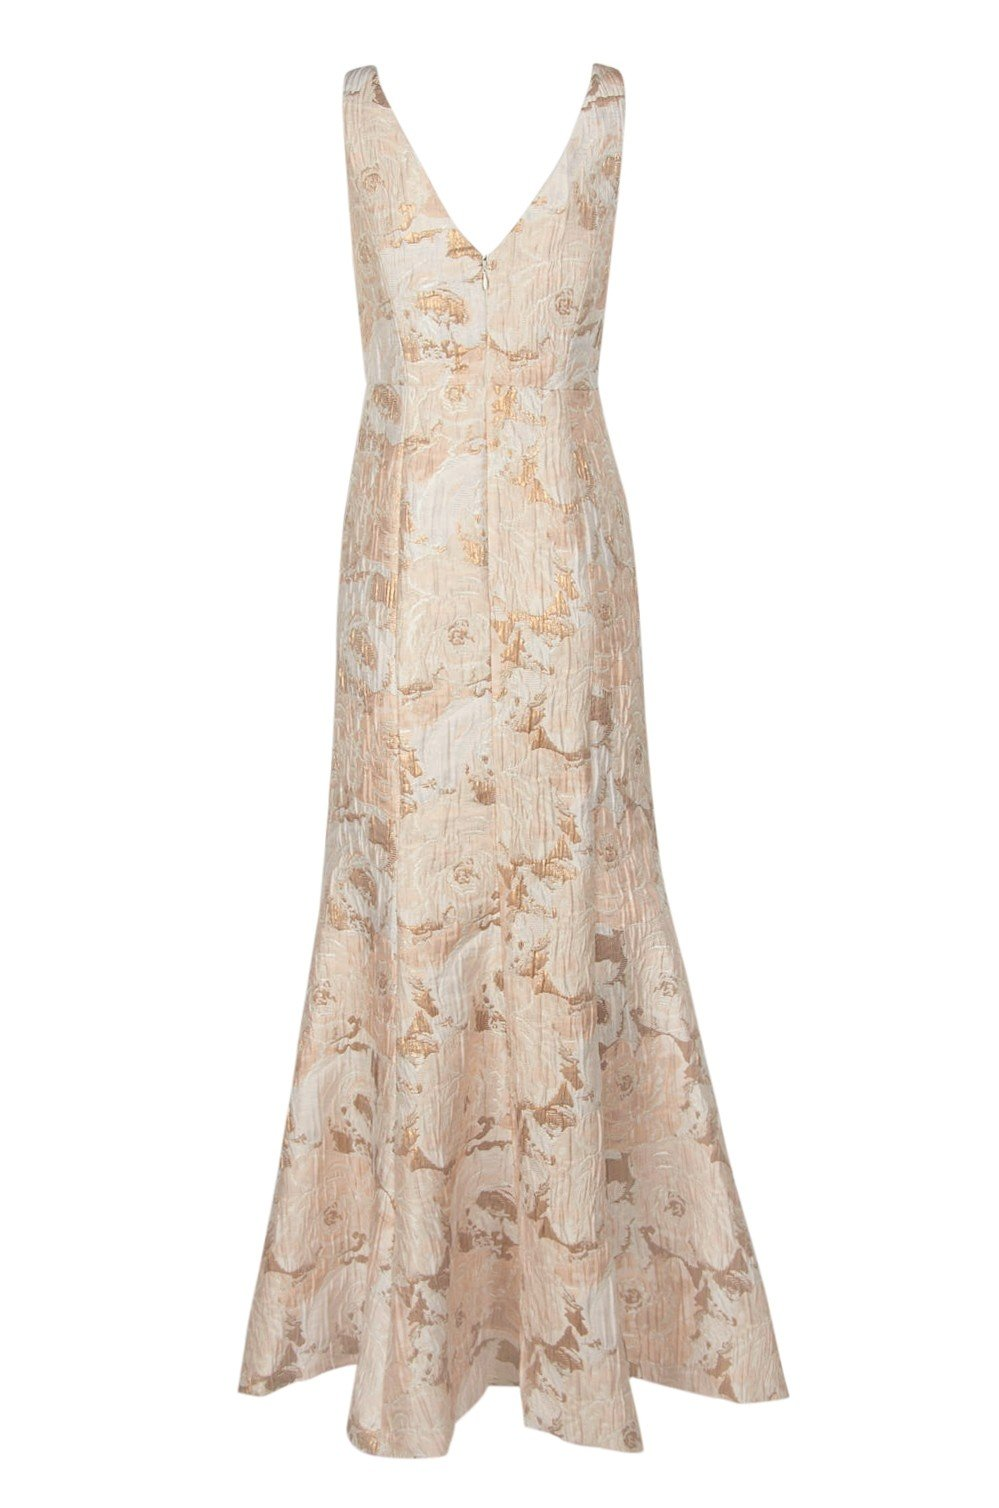 Aidan Mattox - MD1E202493 Floral Metallic Jacquard Deep V-neck Dress In White and Gold